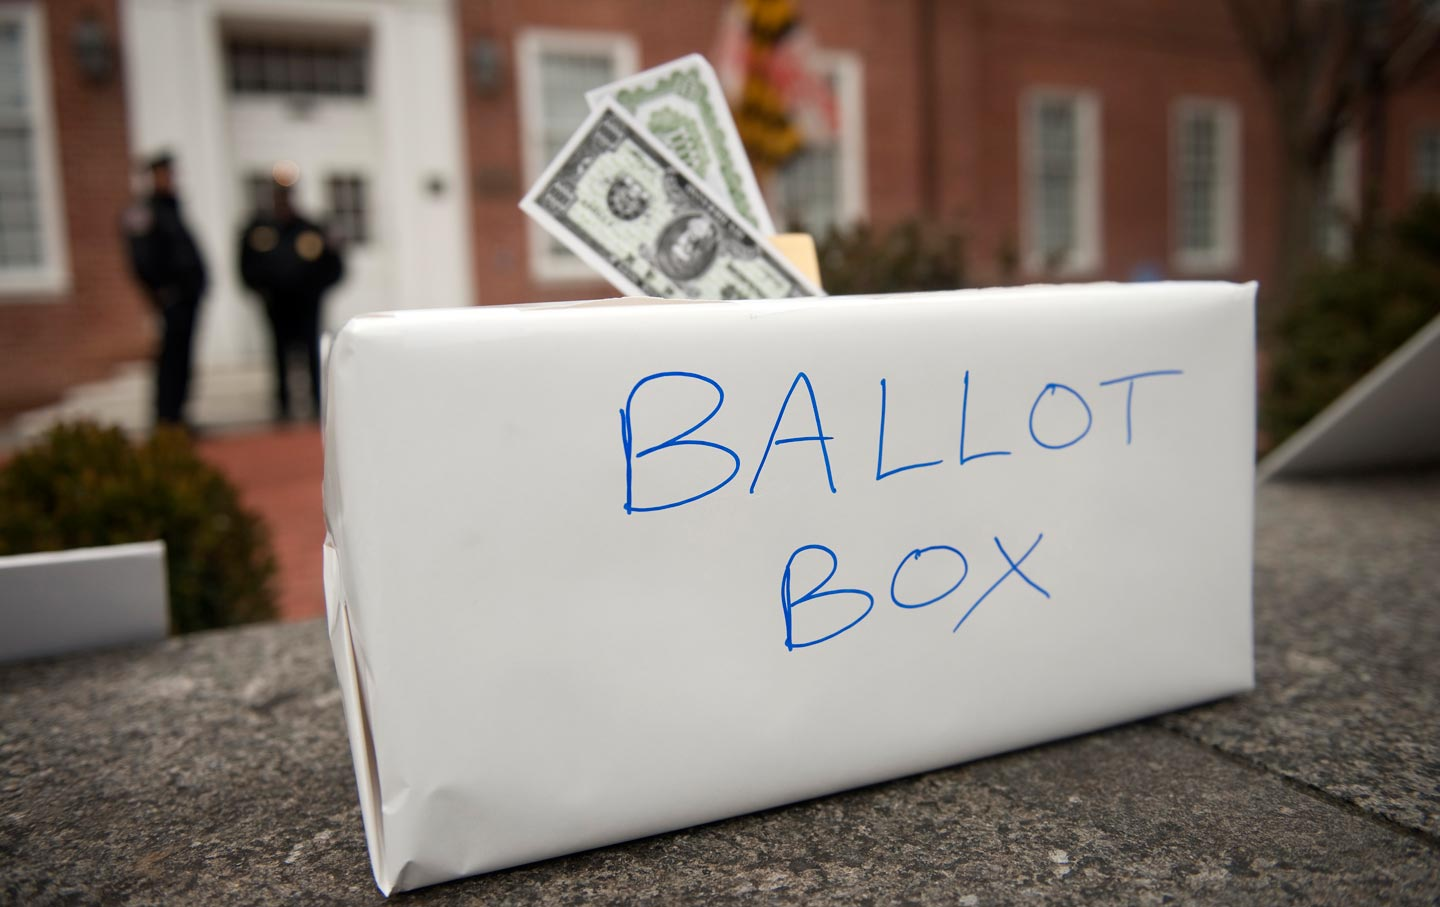 Ballot box stuffed with money